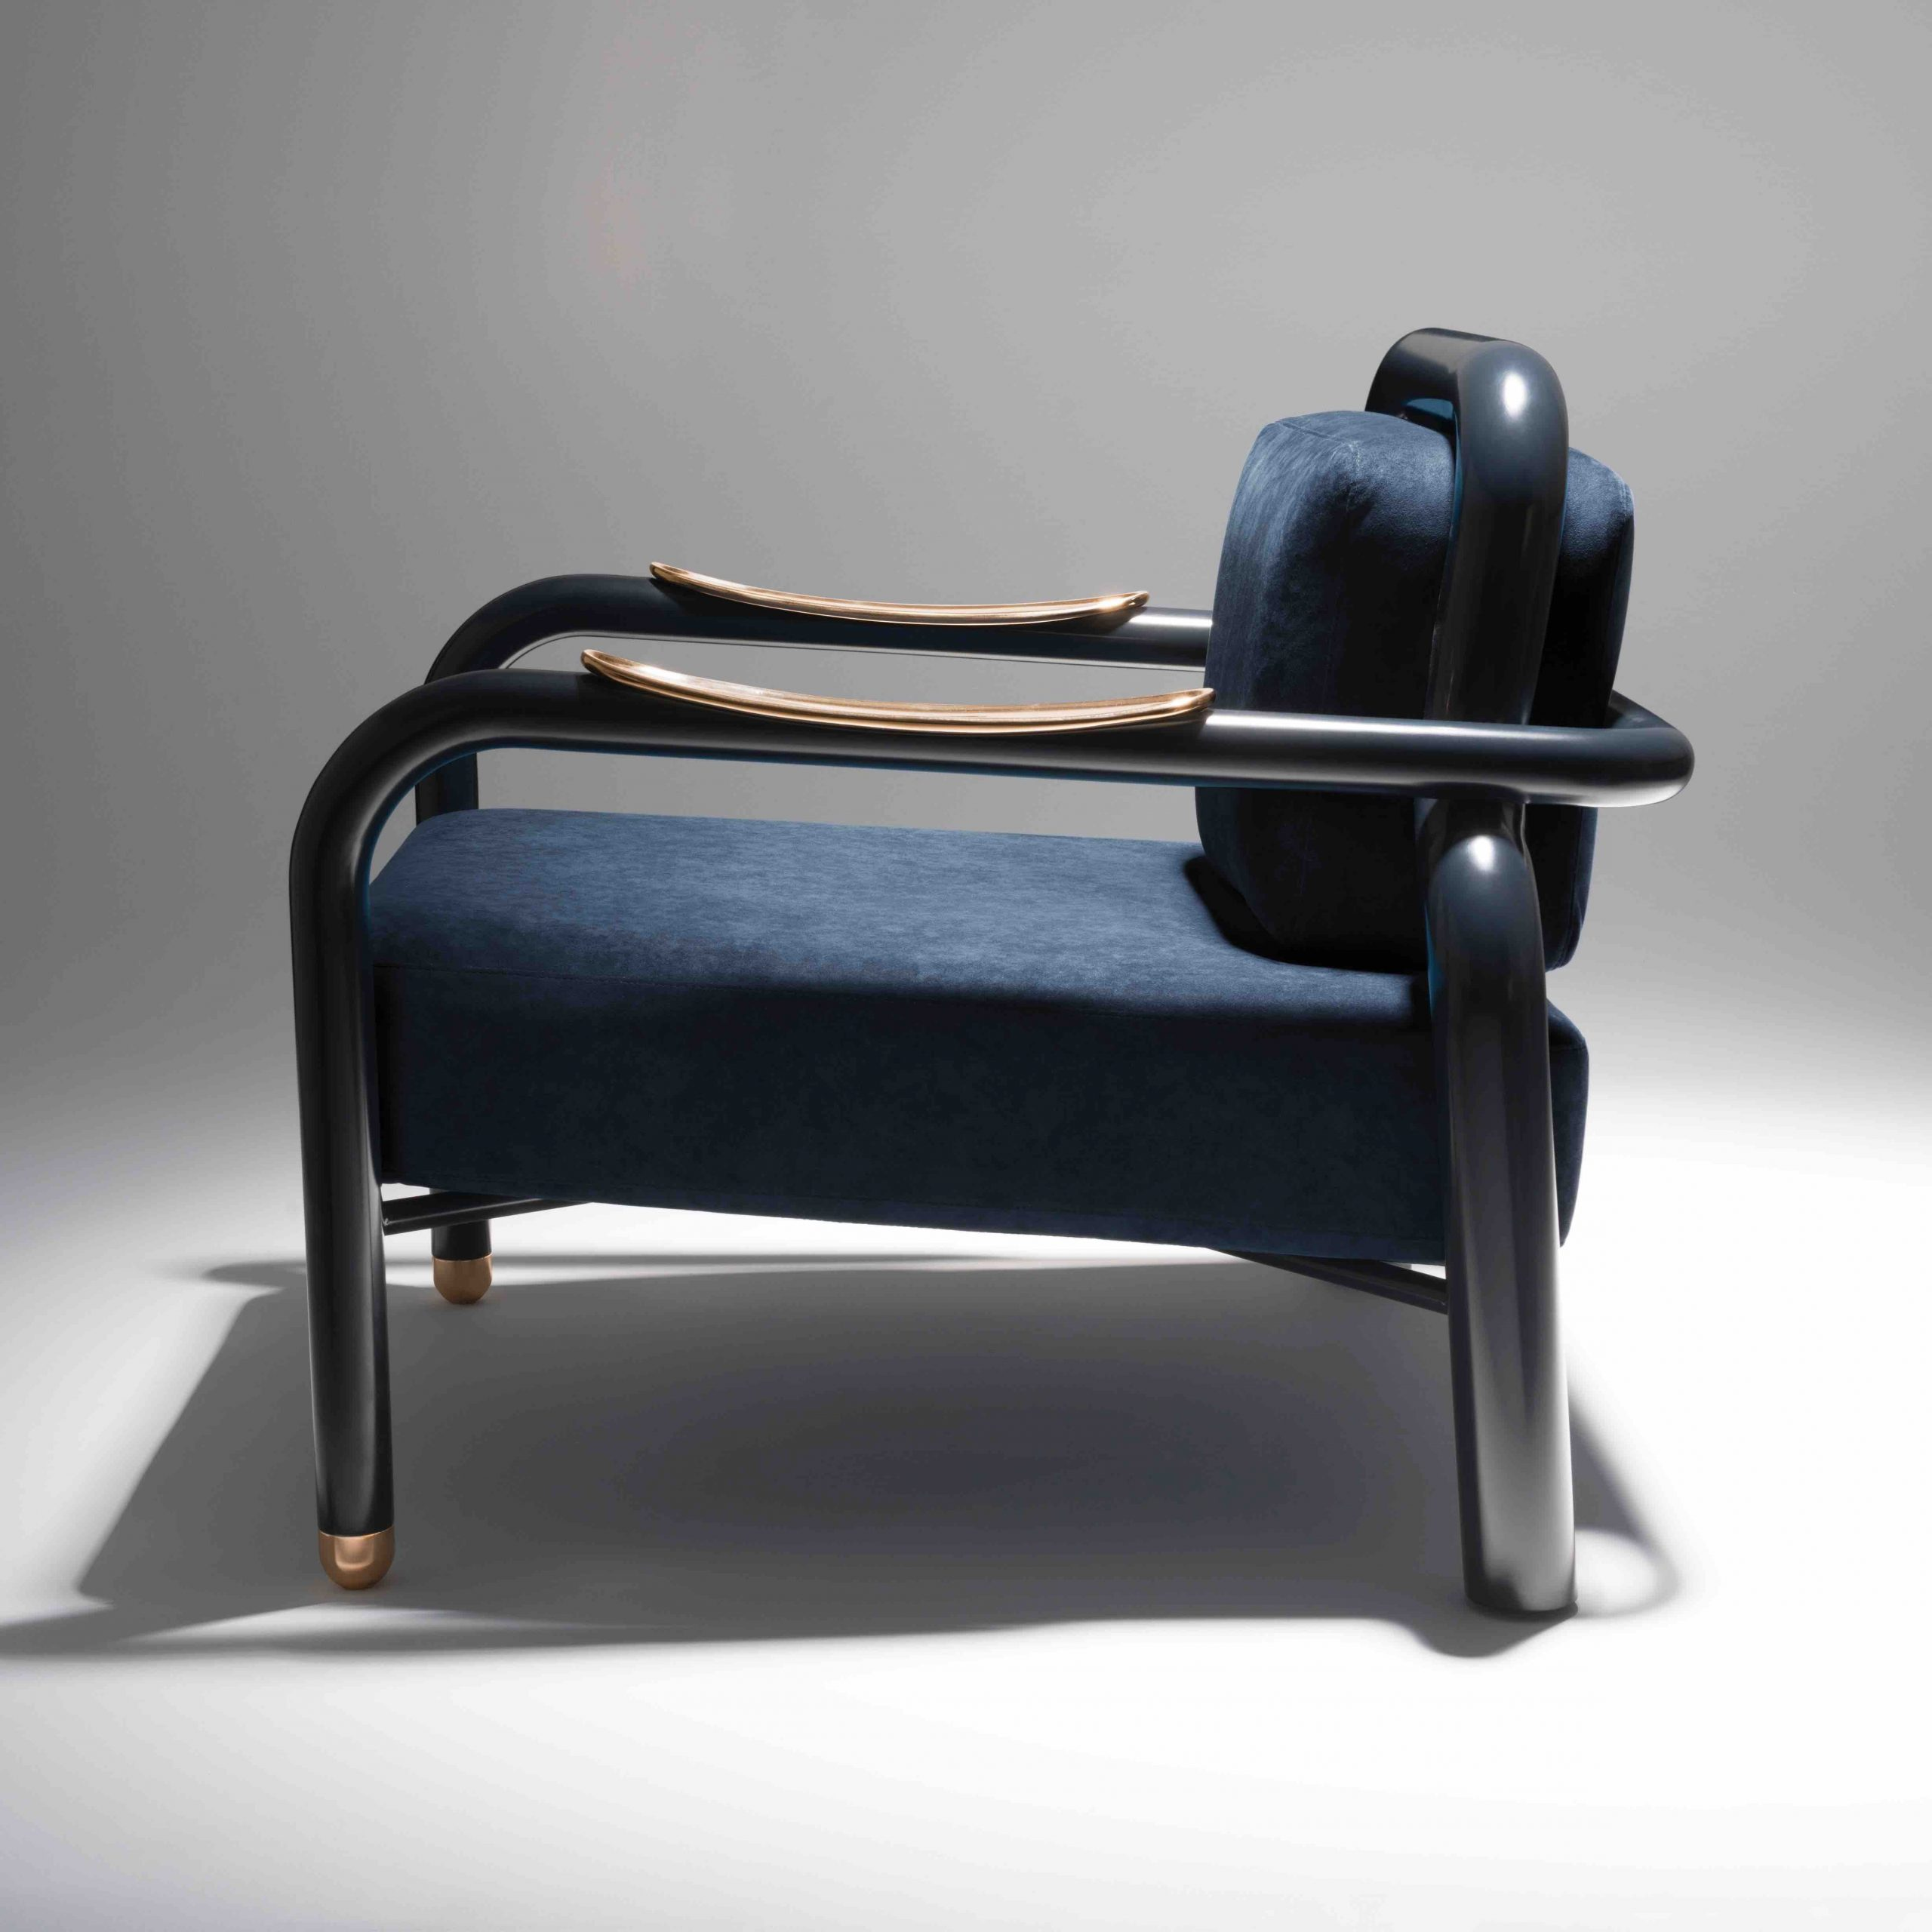 Kayak / Lacquered Steel, Polished Bronze And Alcantara With Regard To Harmoni Armchairs (View 6 of 15)